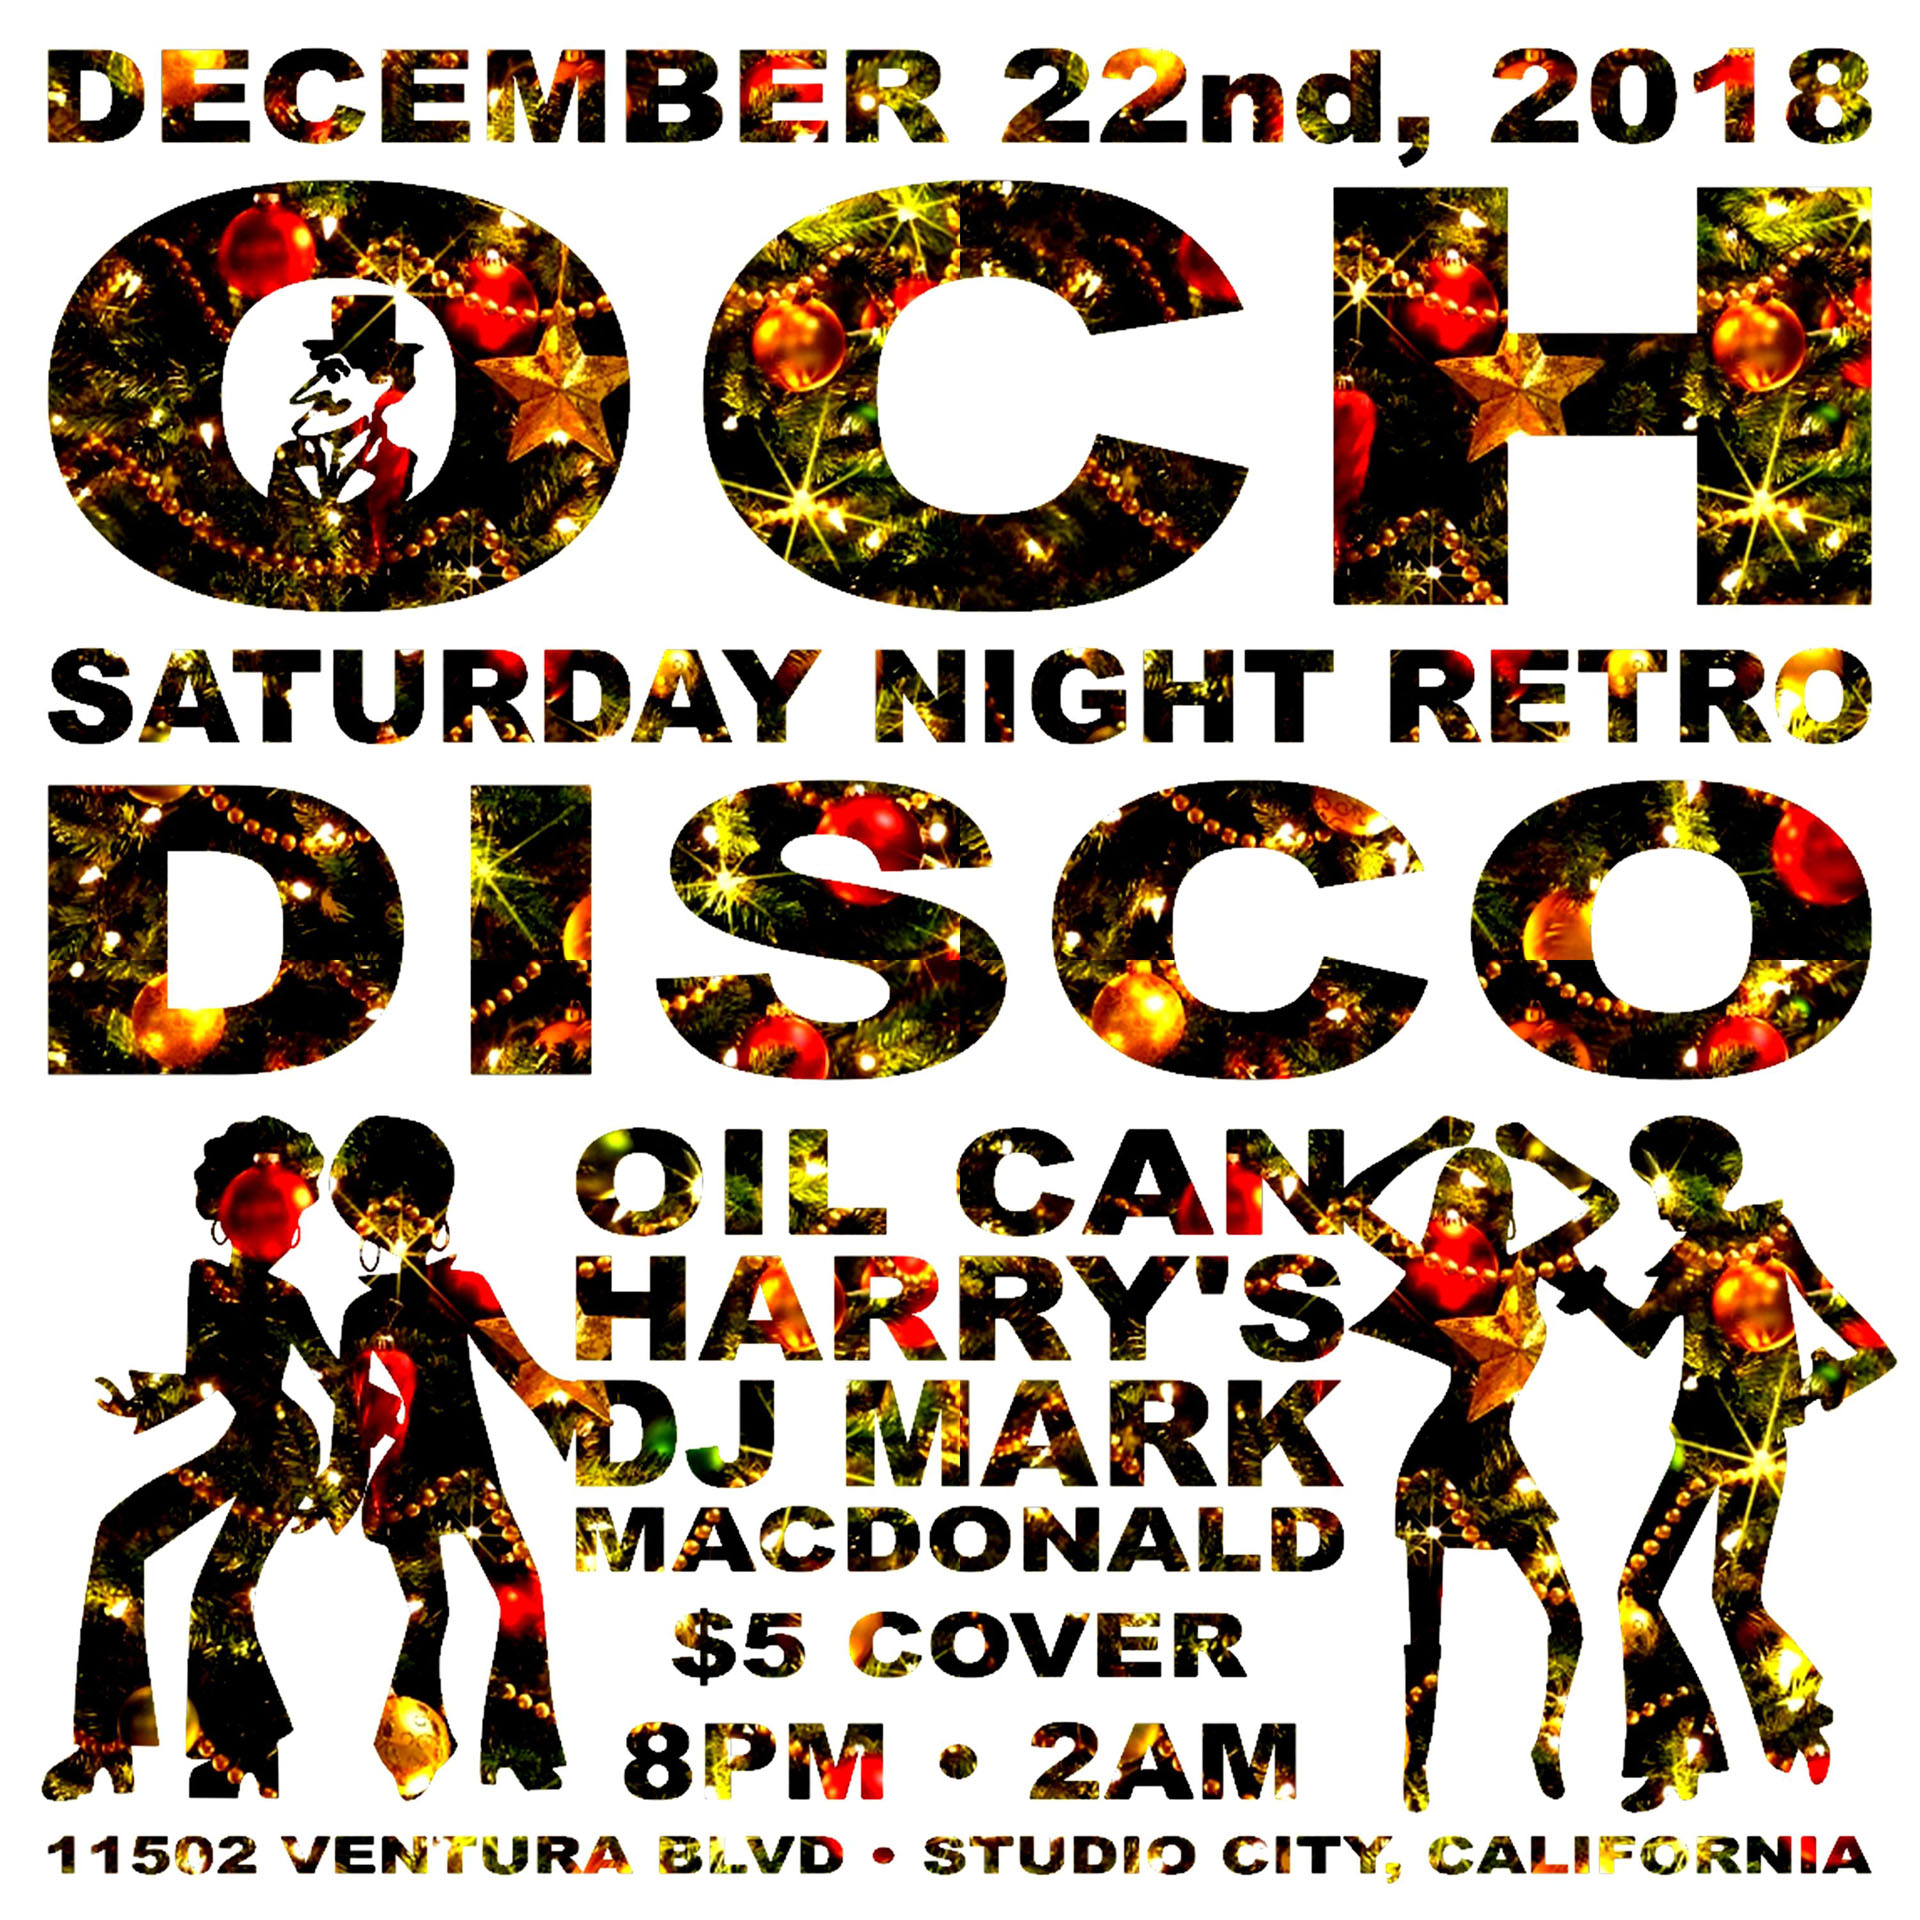 Oil Can Harry's Hosts DJ MARK MACDONALD from Las Vegas for RETRO DISCO: Saturday, December 22, 2018! 8:00 PM to 2:00 AM! $5.00 Cover.